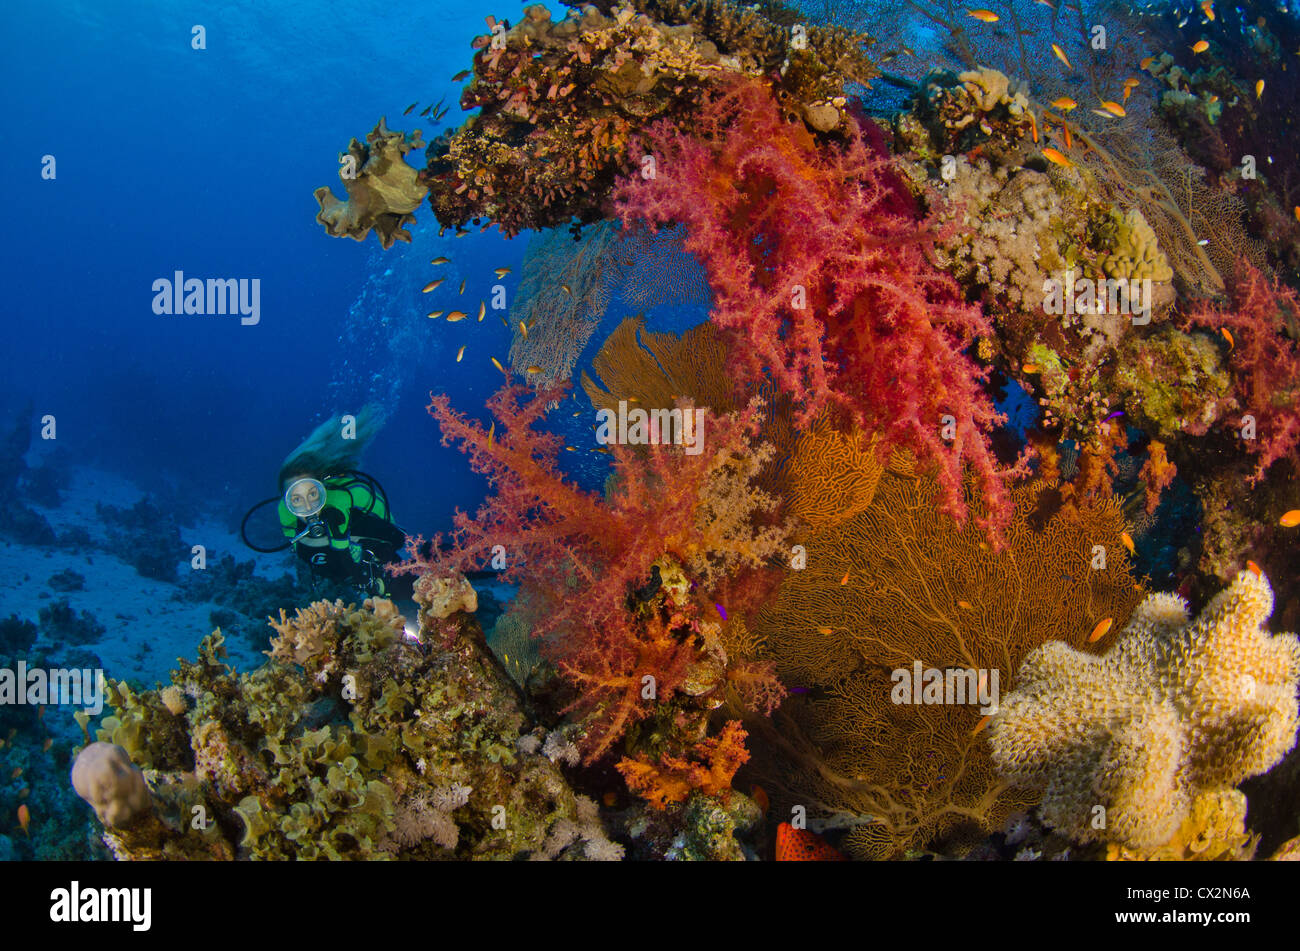 coral reef, Red Sea, Egypt, tropical reef, colorful, color, coral, diver, female diver, water, deep, blue water, - Stock Image